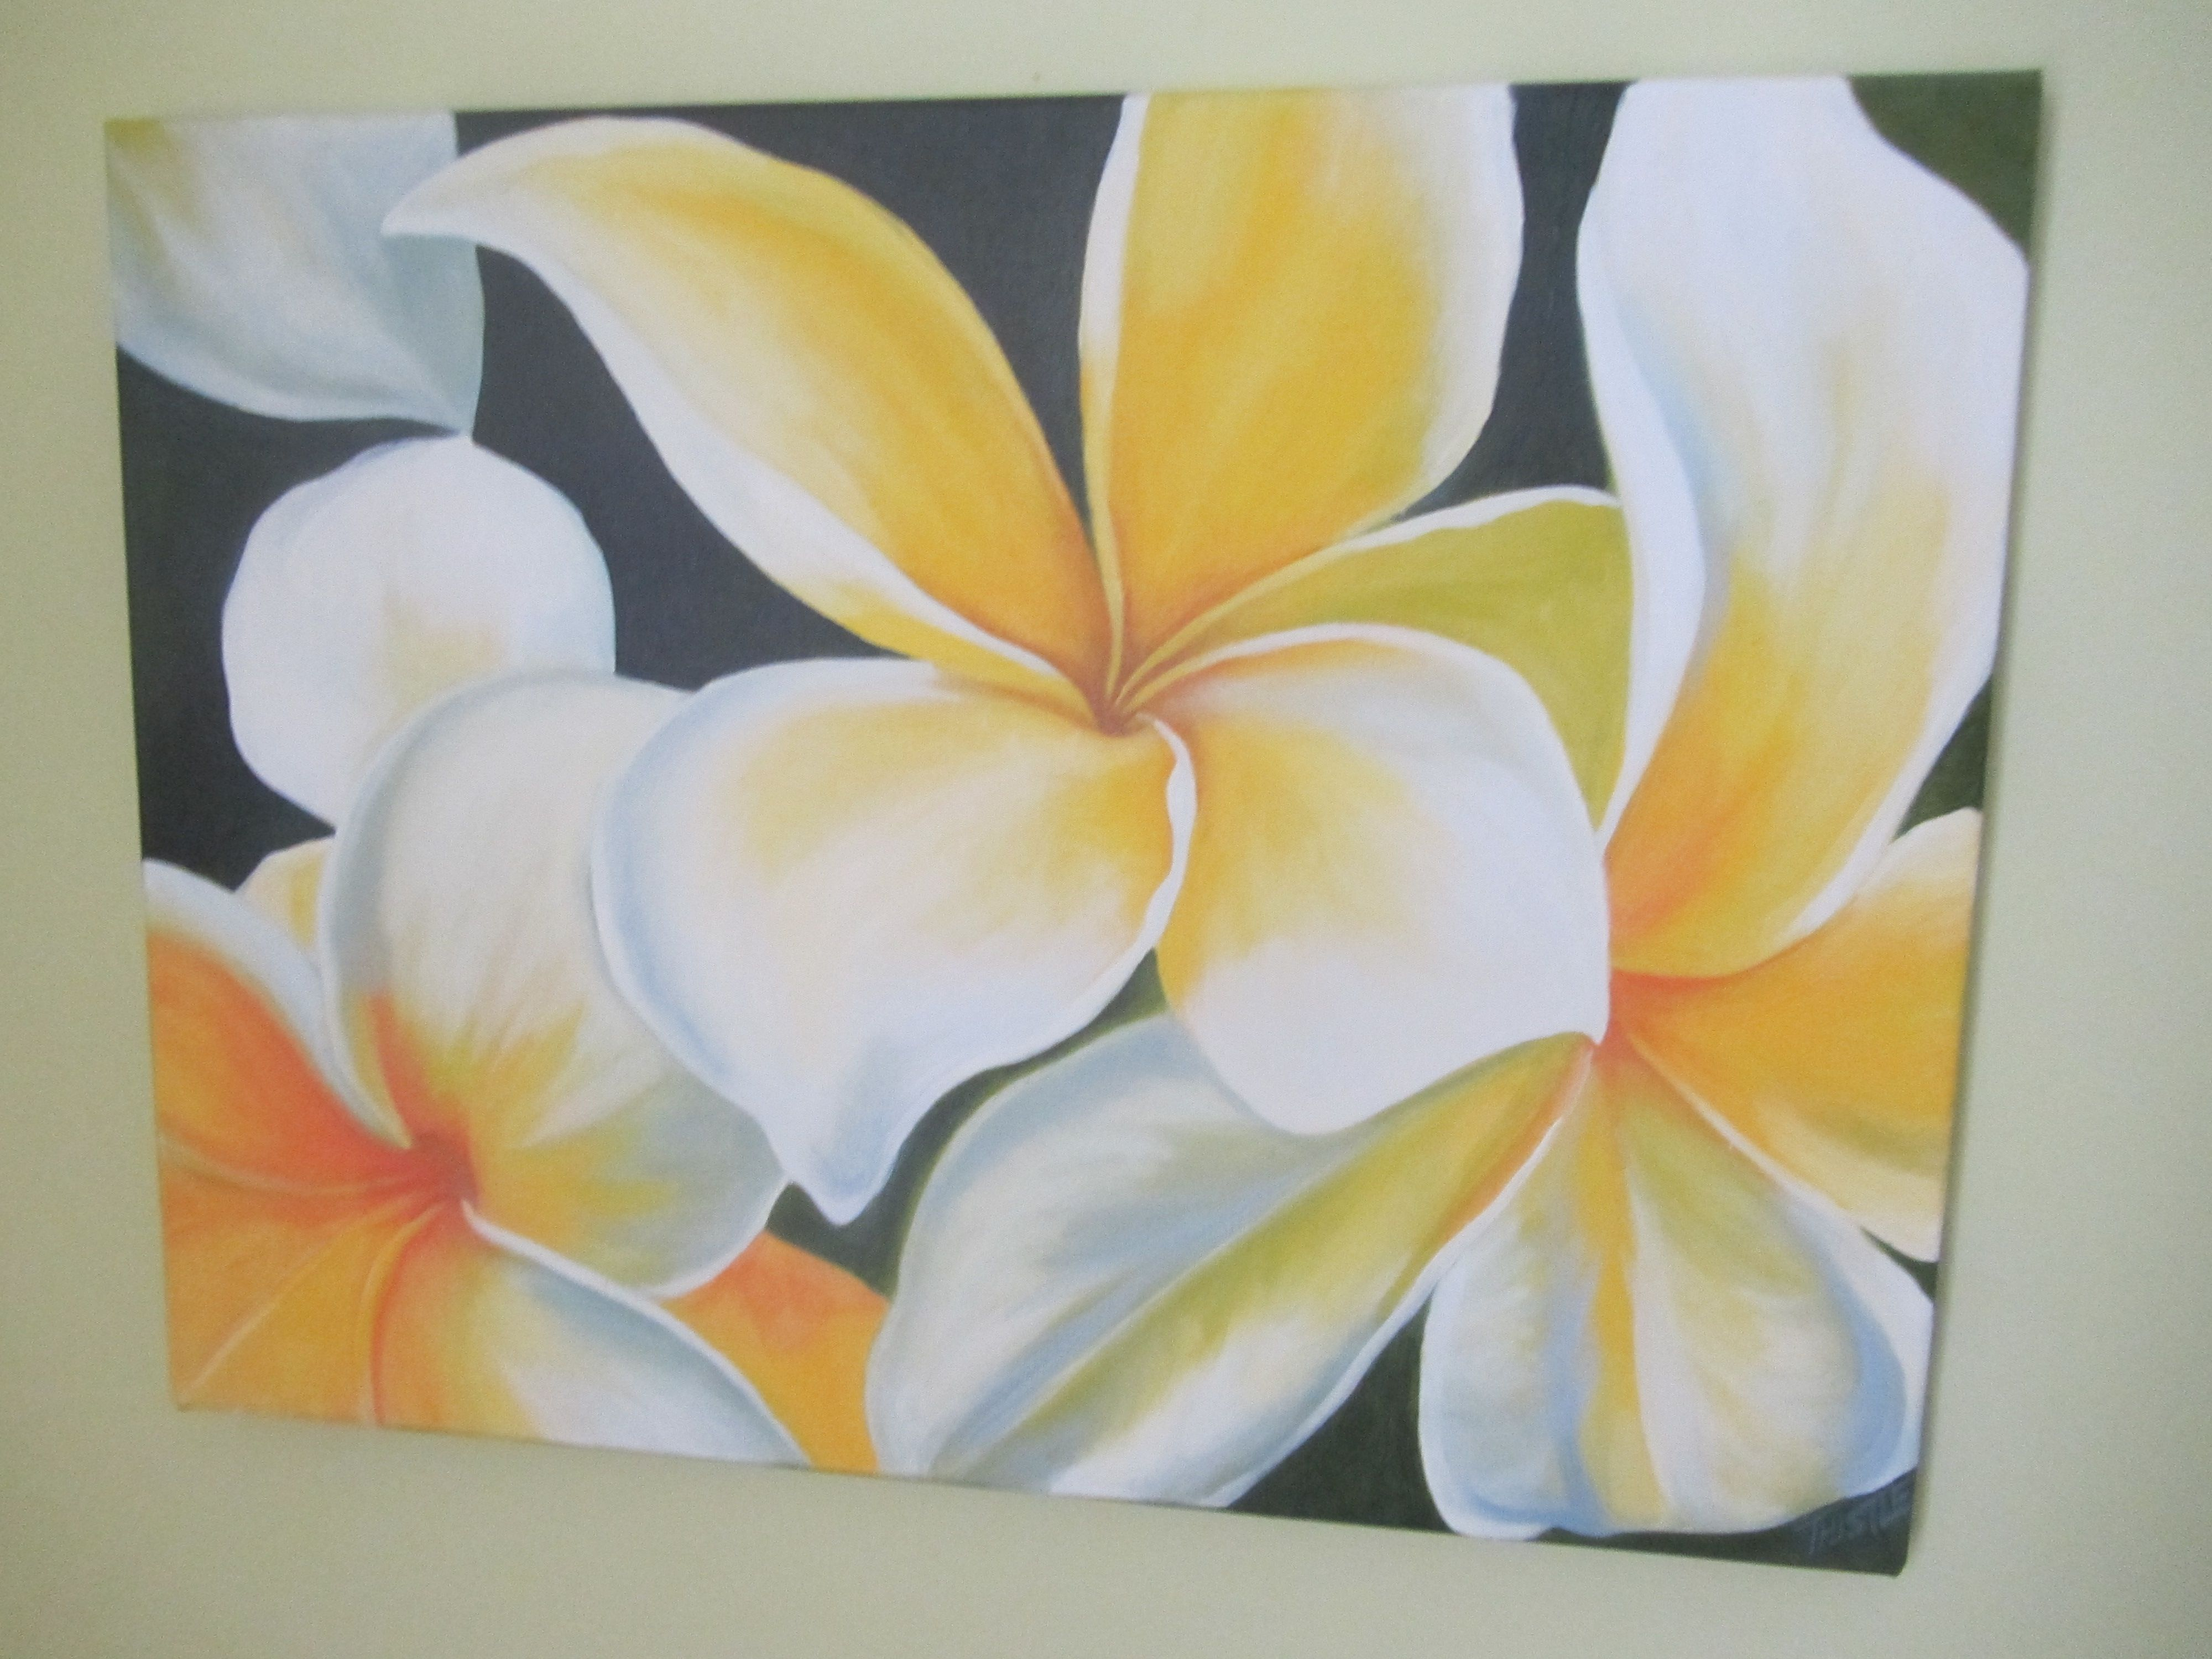 Plumeria hawaiian flower oil painting email thistledogarticloud plumeria hawaiian flower oil painting email thistledogarticloud for more information on izmirmasajfo Image collections